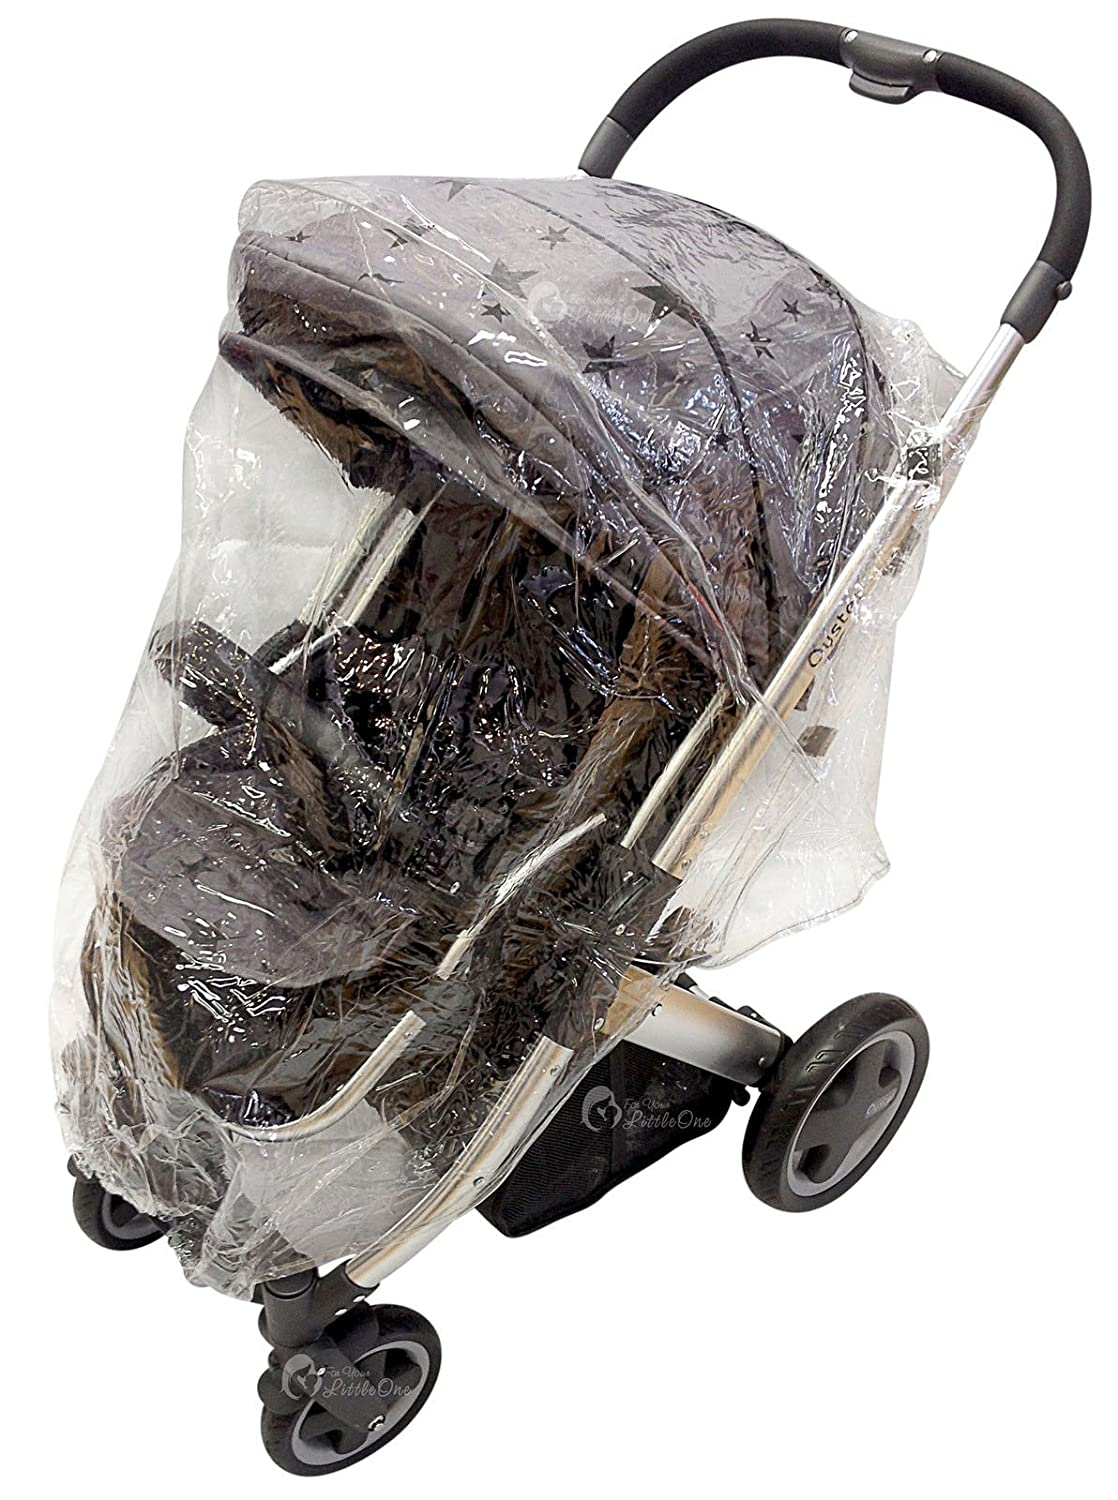 Raincover Compatible with I/'Candy Peach 142 Peach 2 Pushchair